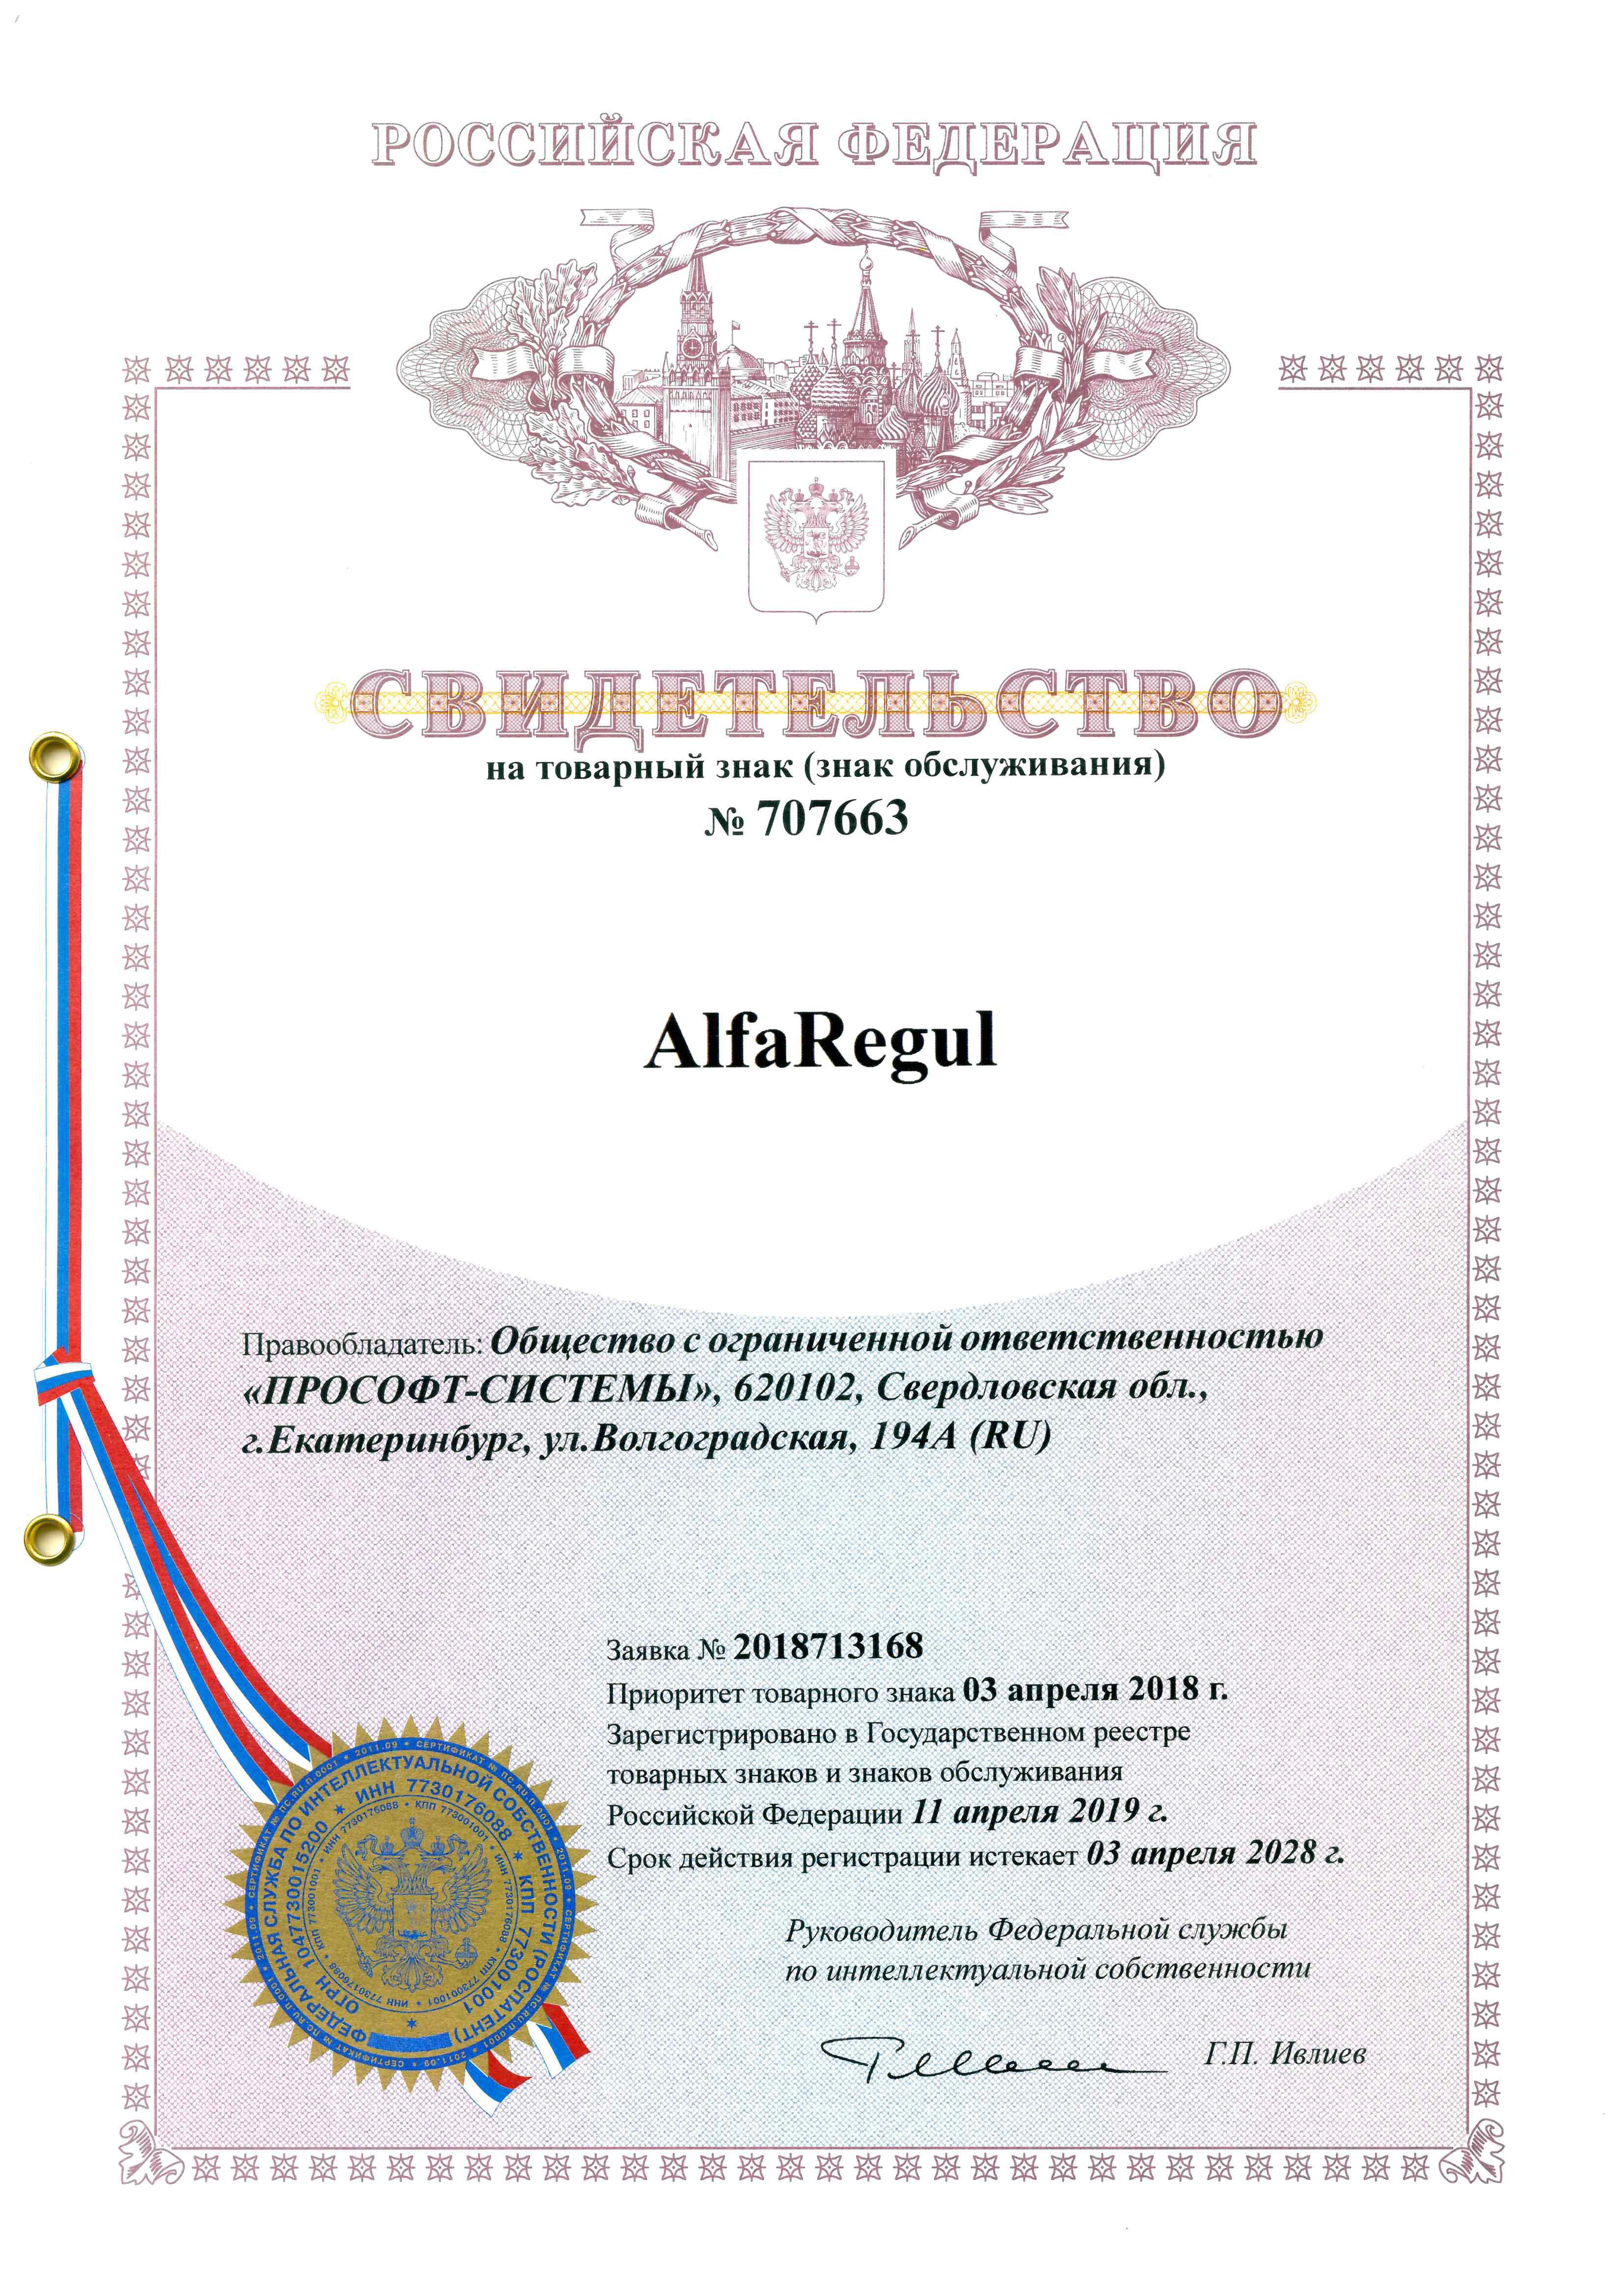 AlfaRegul Registered Trademark